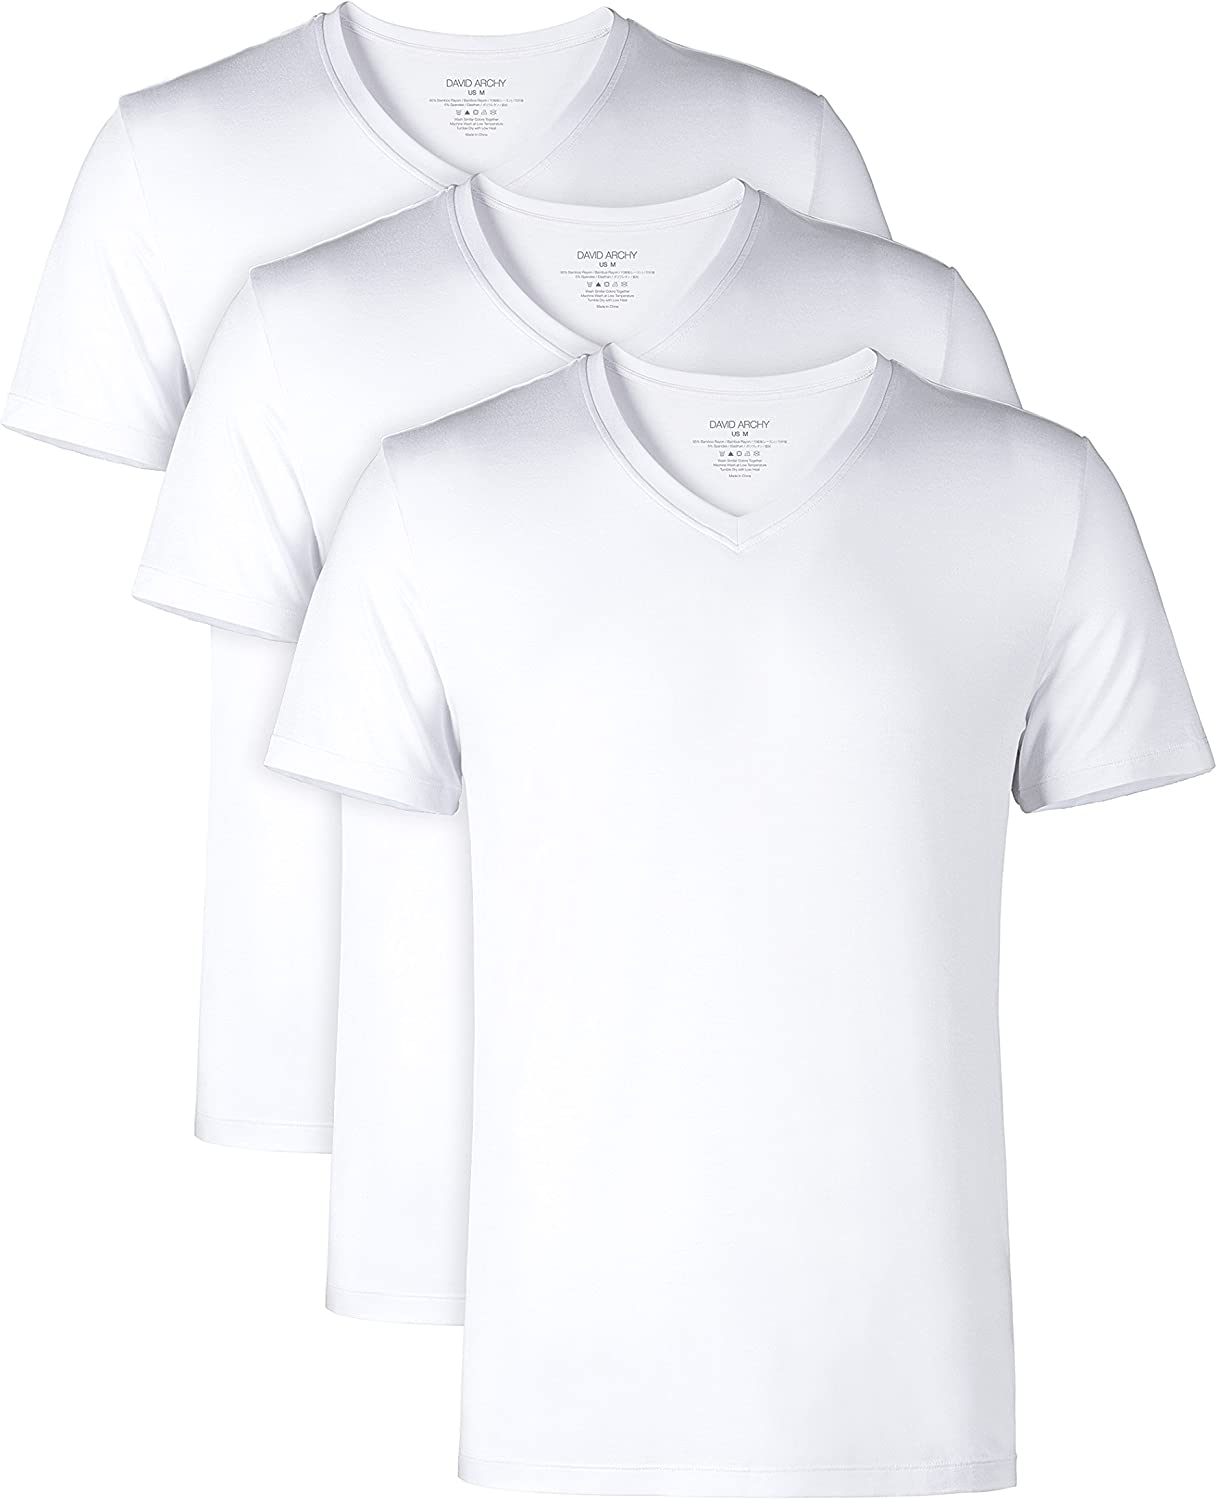 DAVID ARCHY Mens Undershirts Ultra Soft Micro Modal V-Neck Breathable T-Shirts 2 or 3 Pack